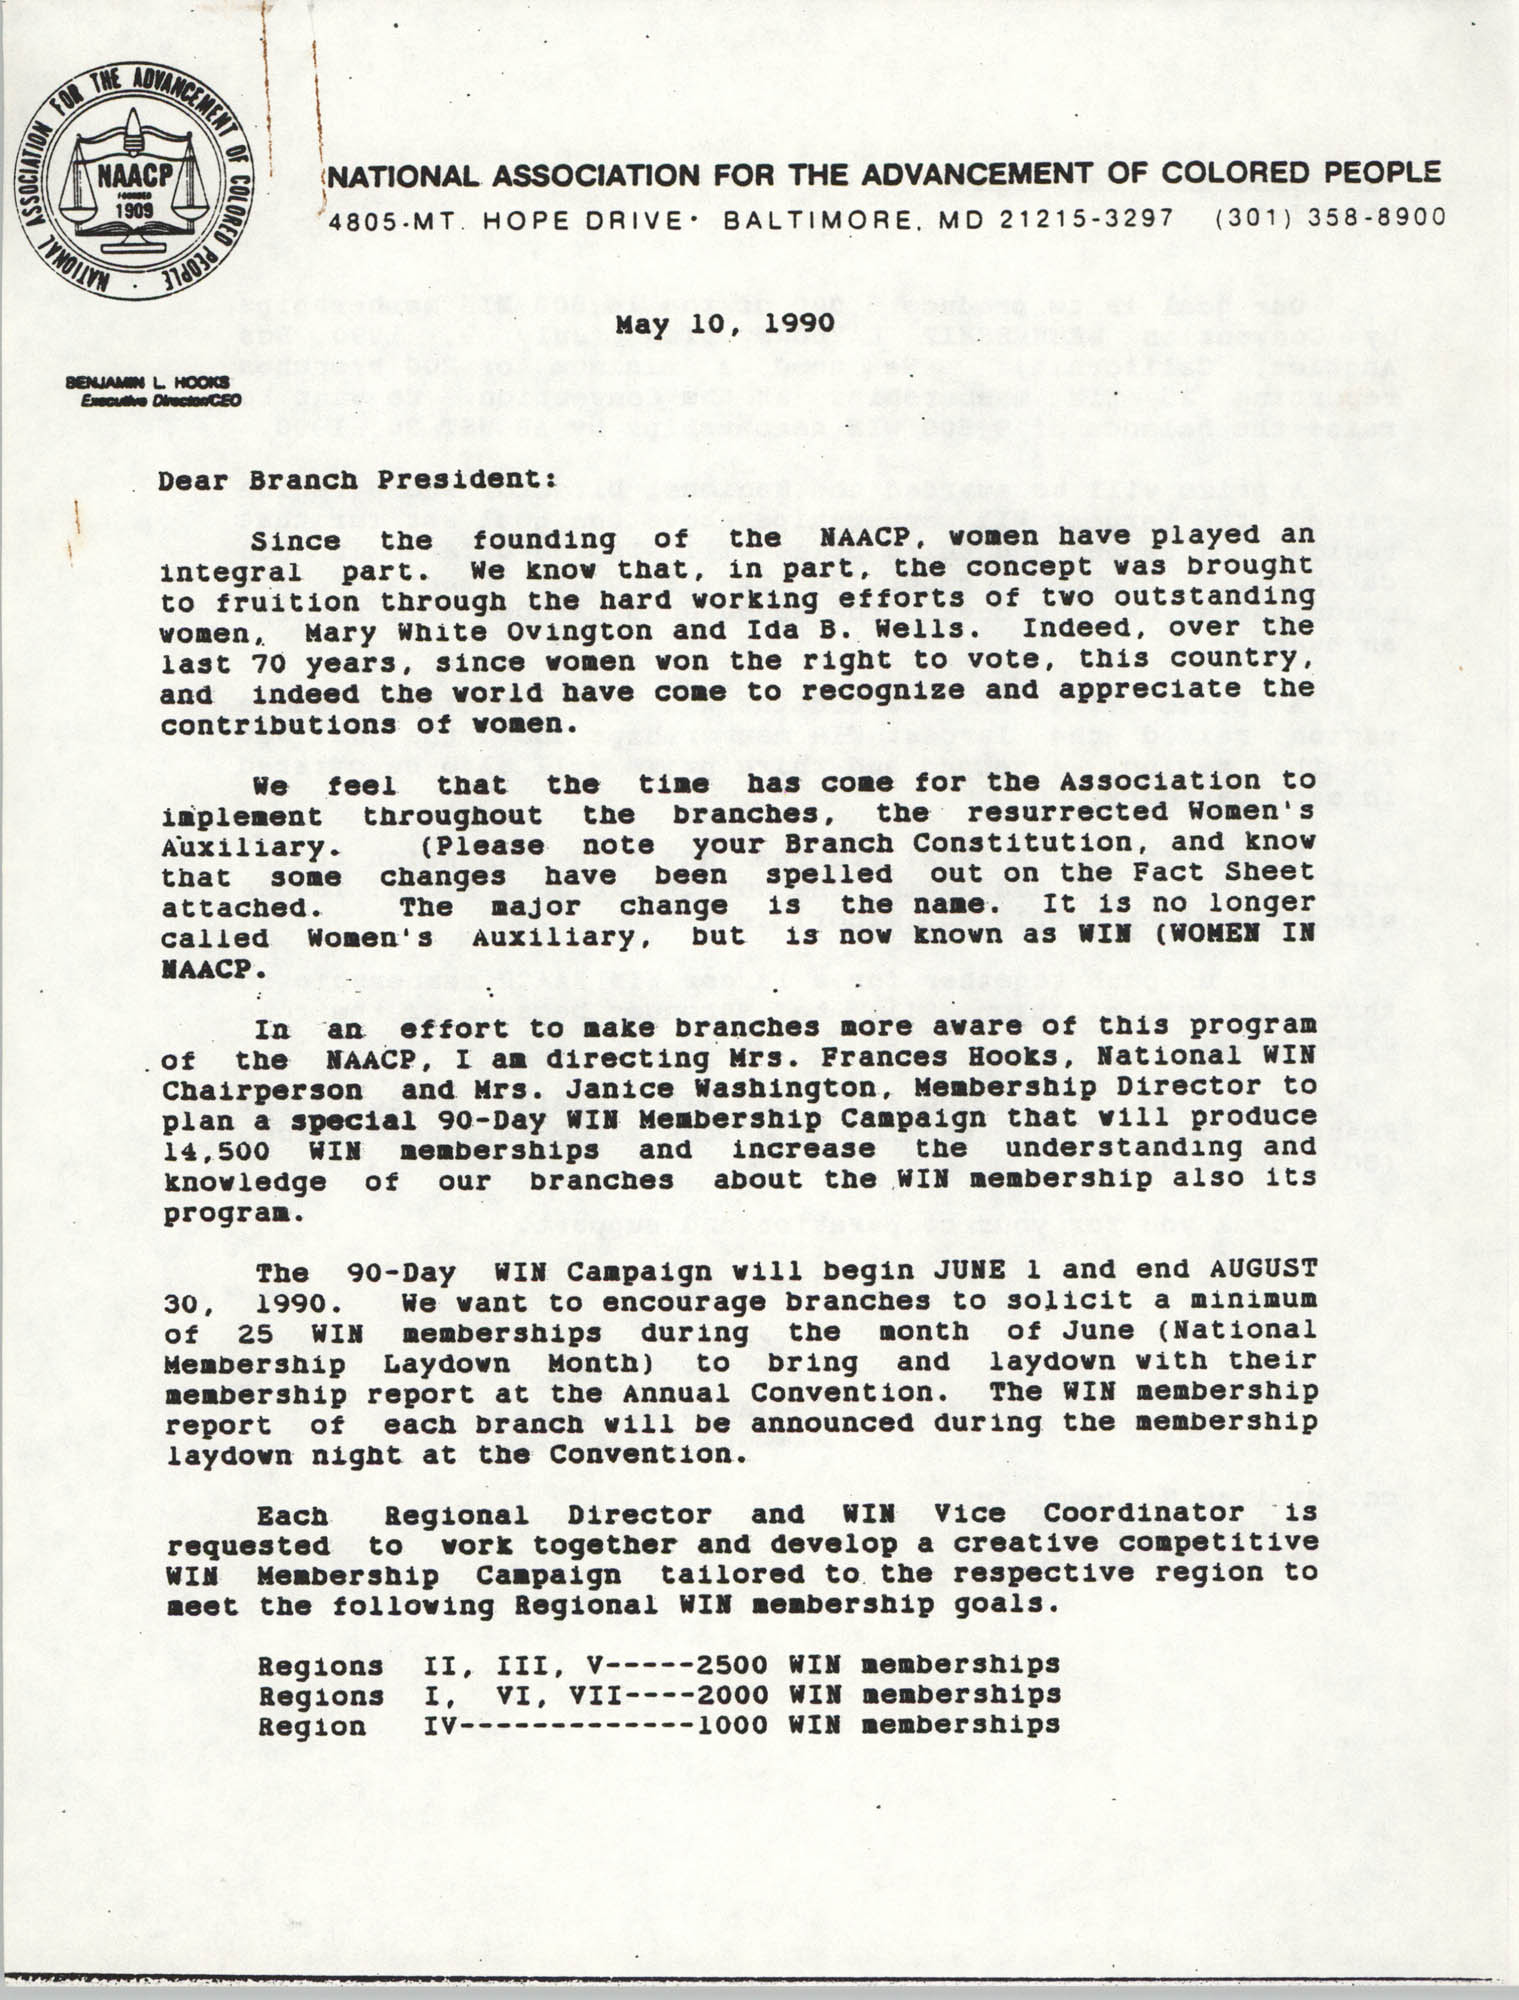 NAACP Memorandum, May 10, 1990, Page 1